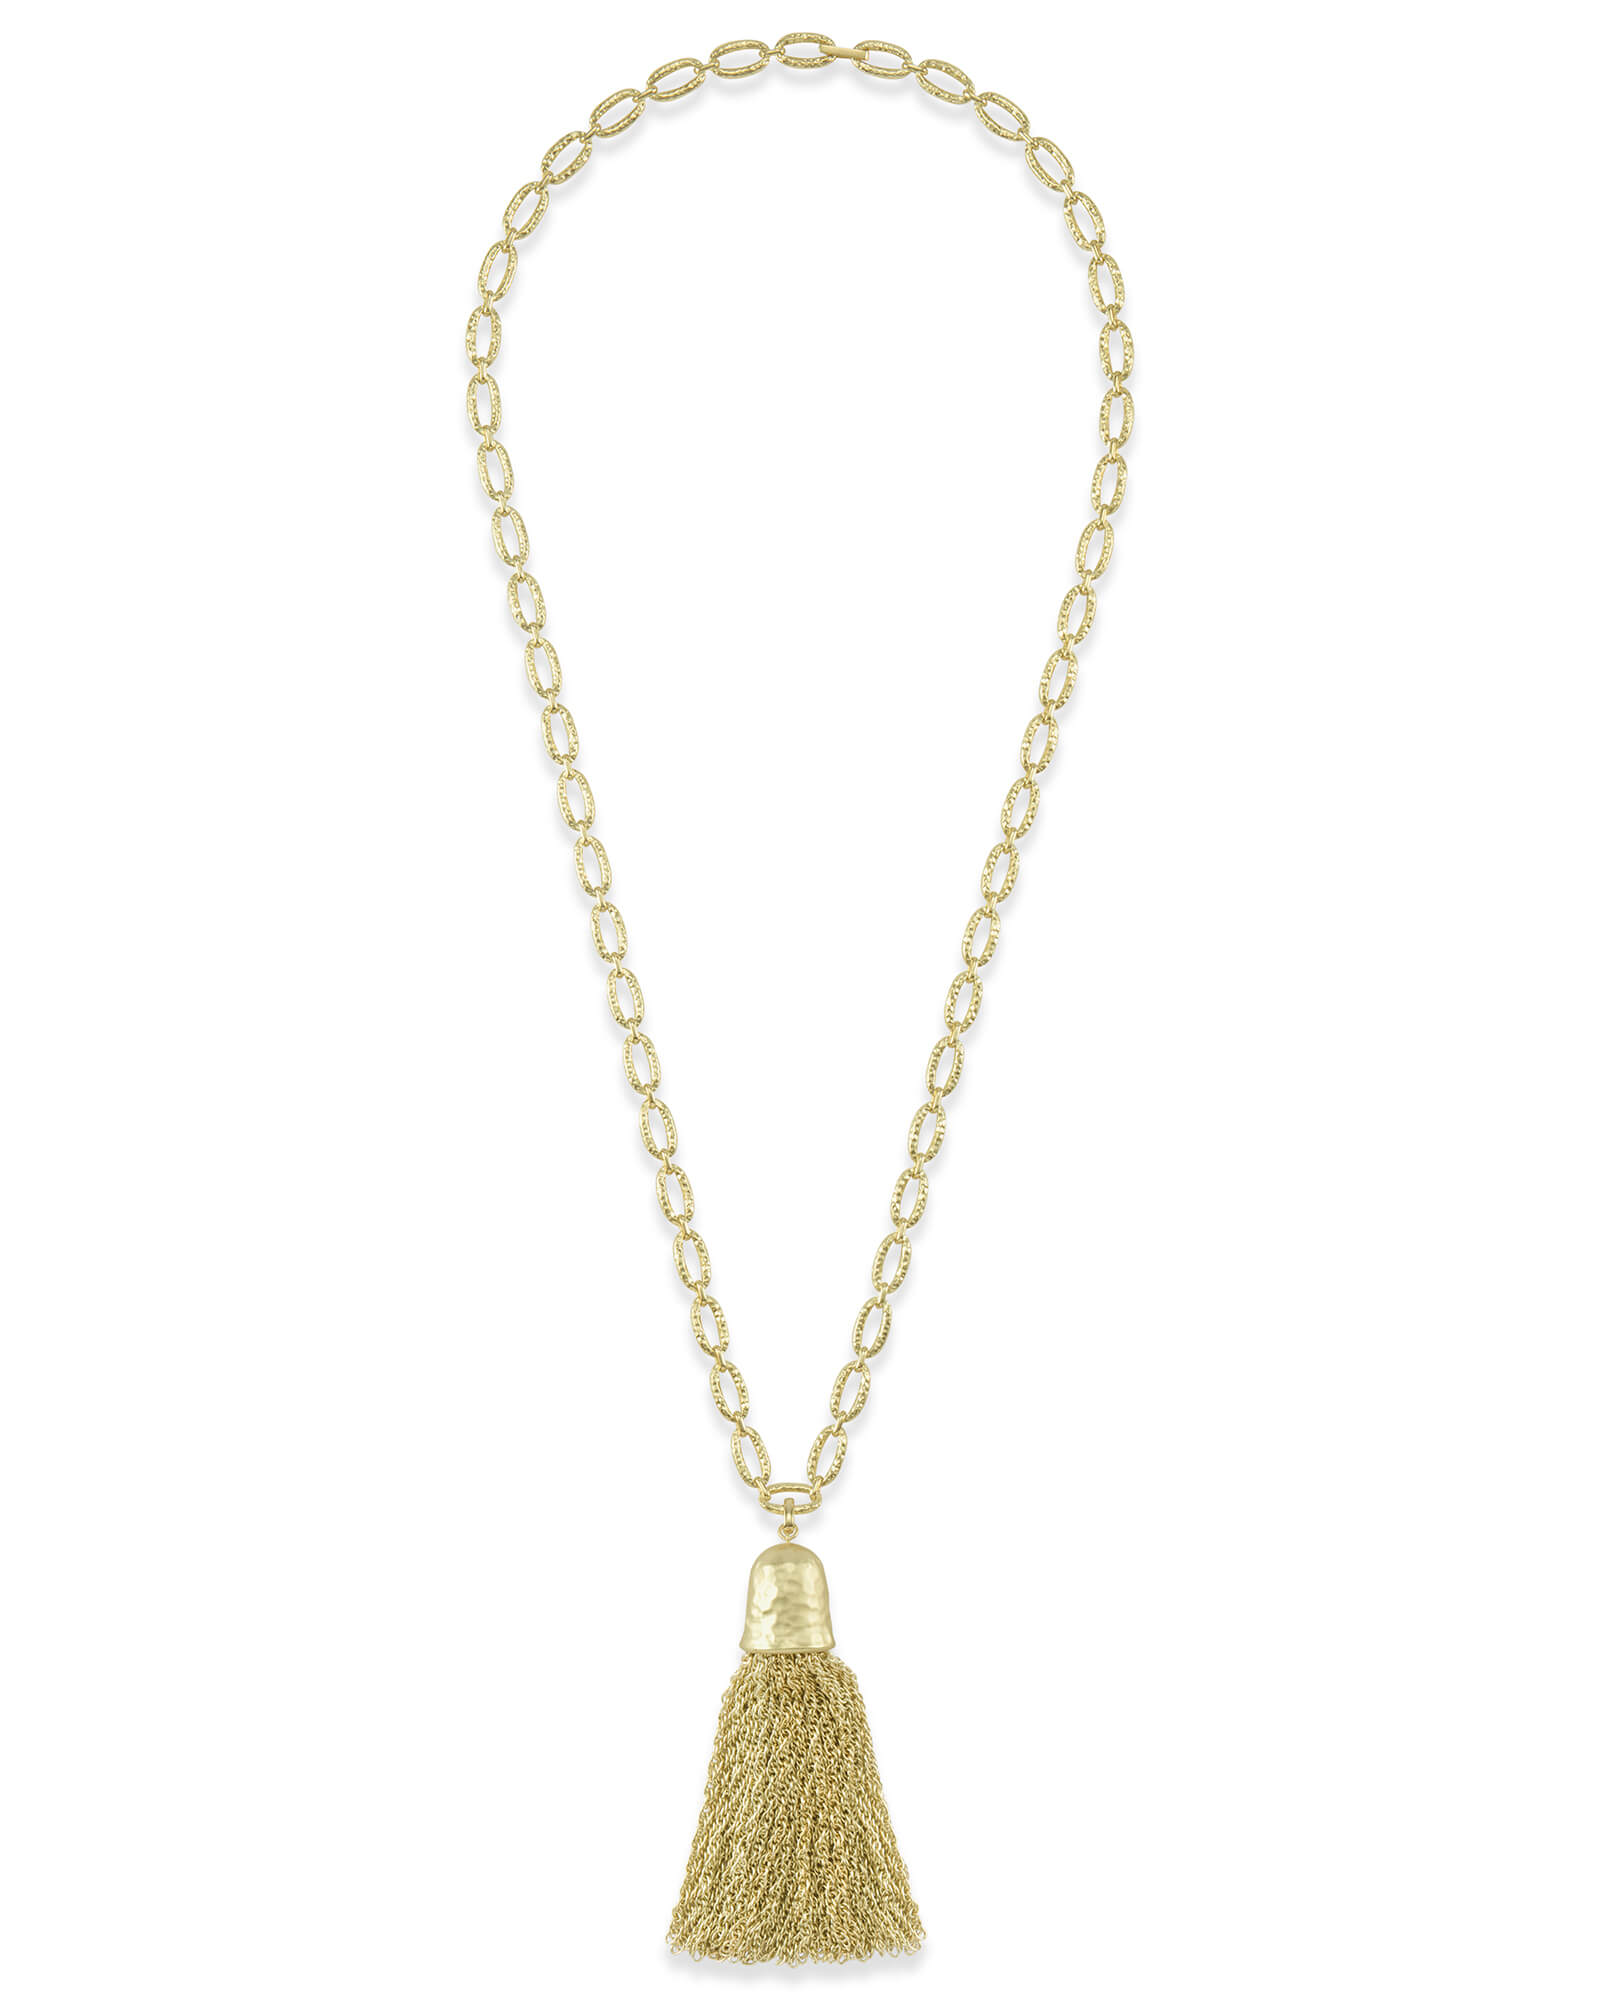 Tassel Charm Necklace Set